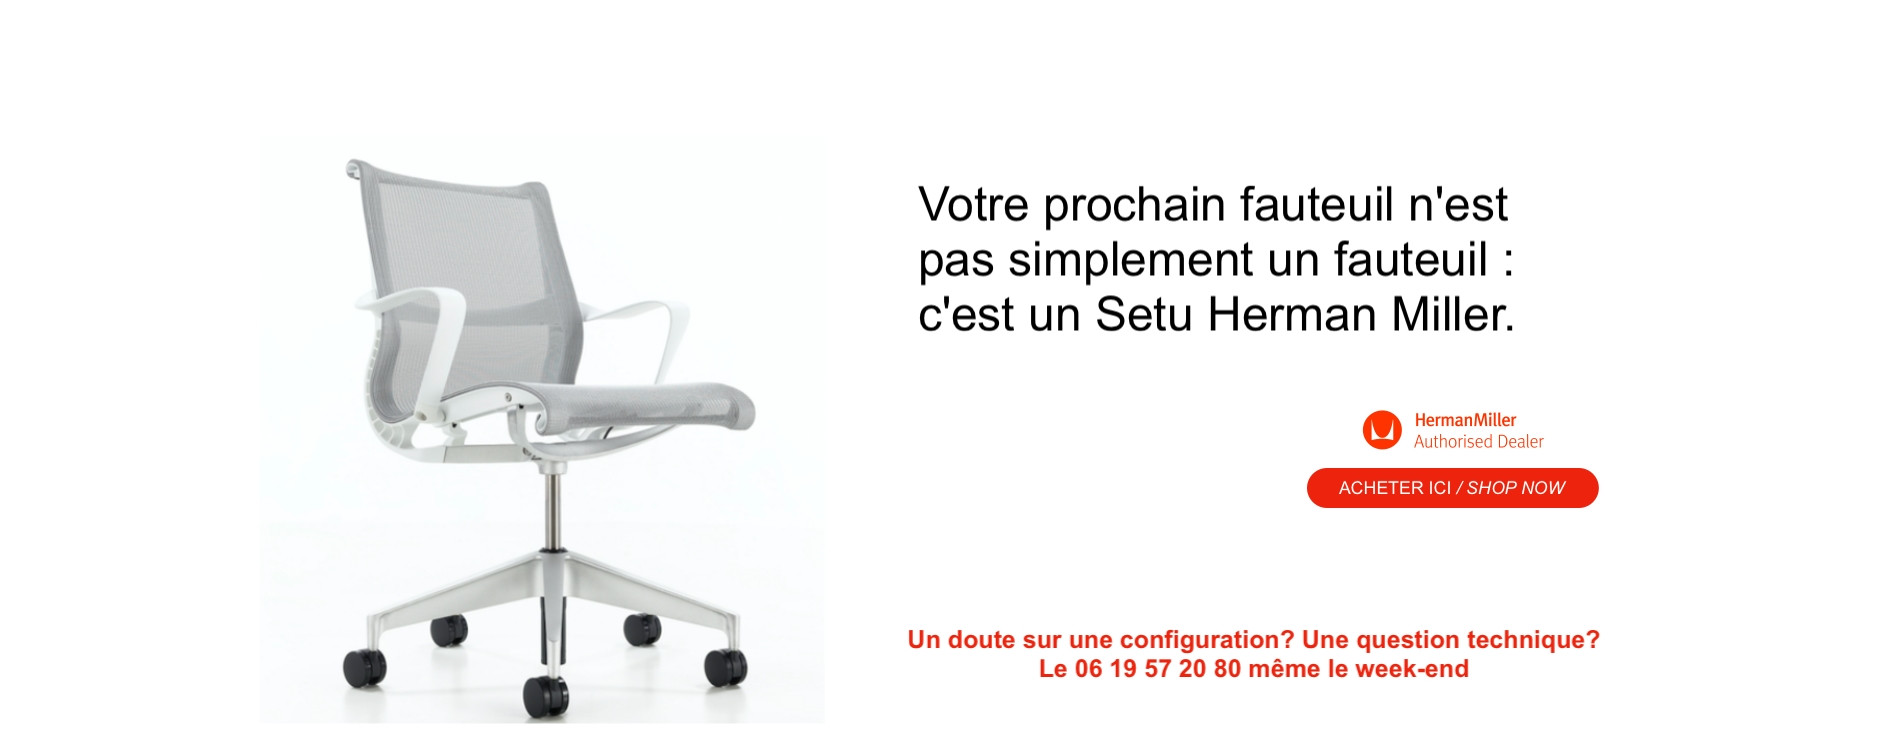 Your next chair is a Setu Herman Miller